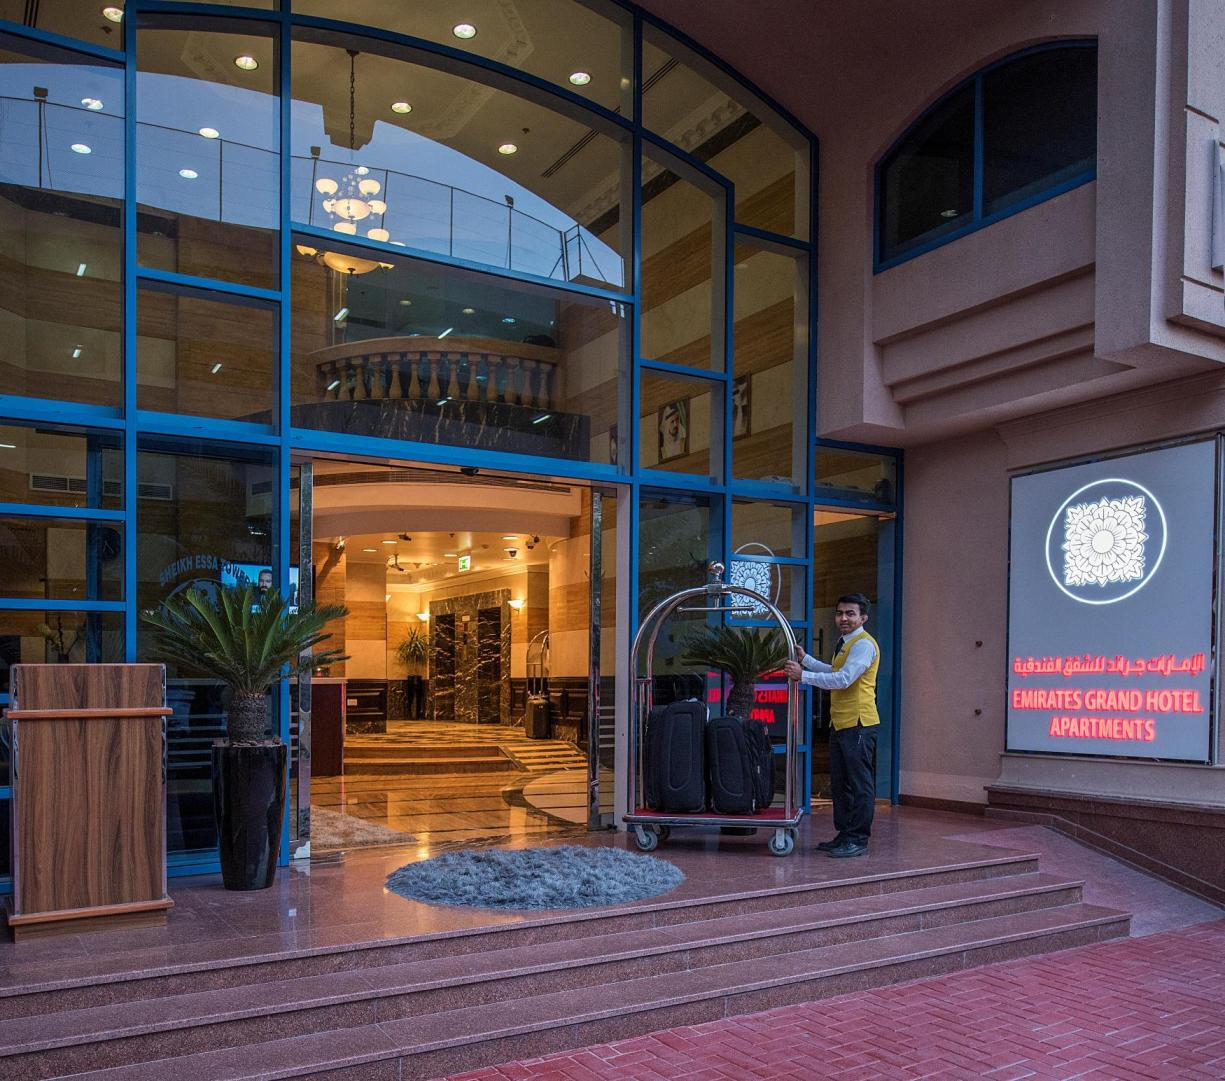 Hotel Entrance at Emirates Grand Hotel Apartments